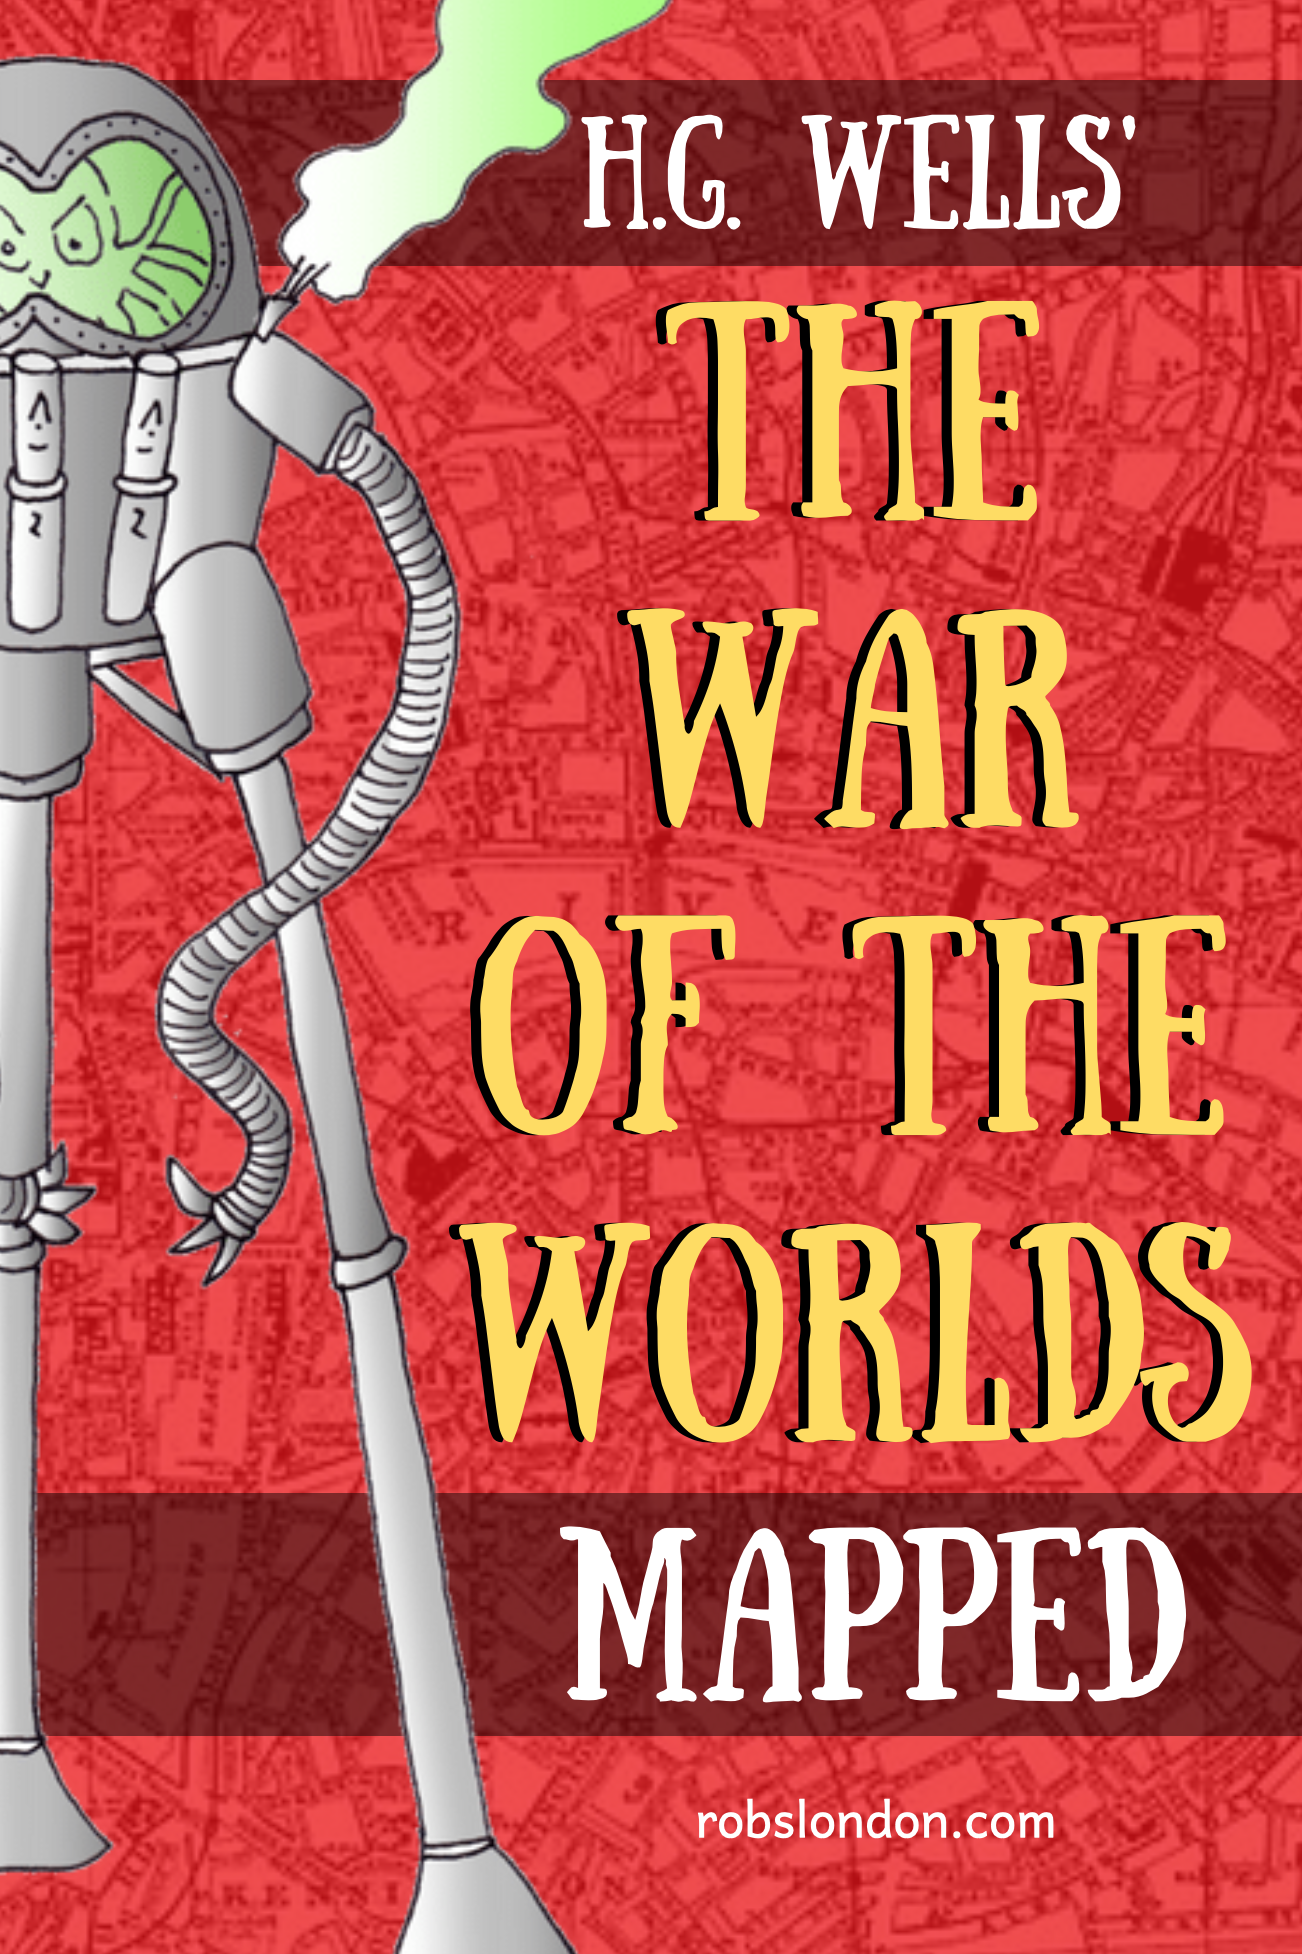 The War of the Worlds Mapped robslondon.com